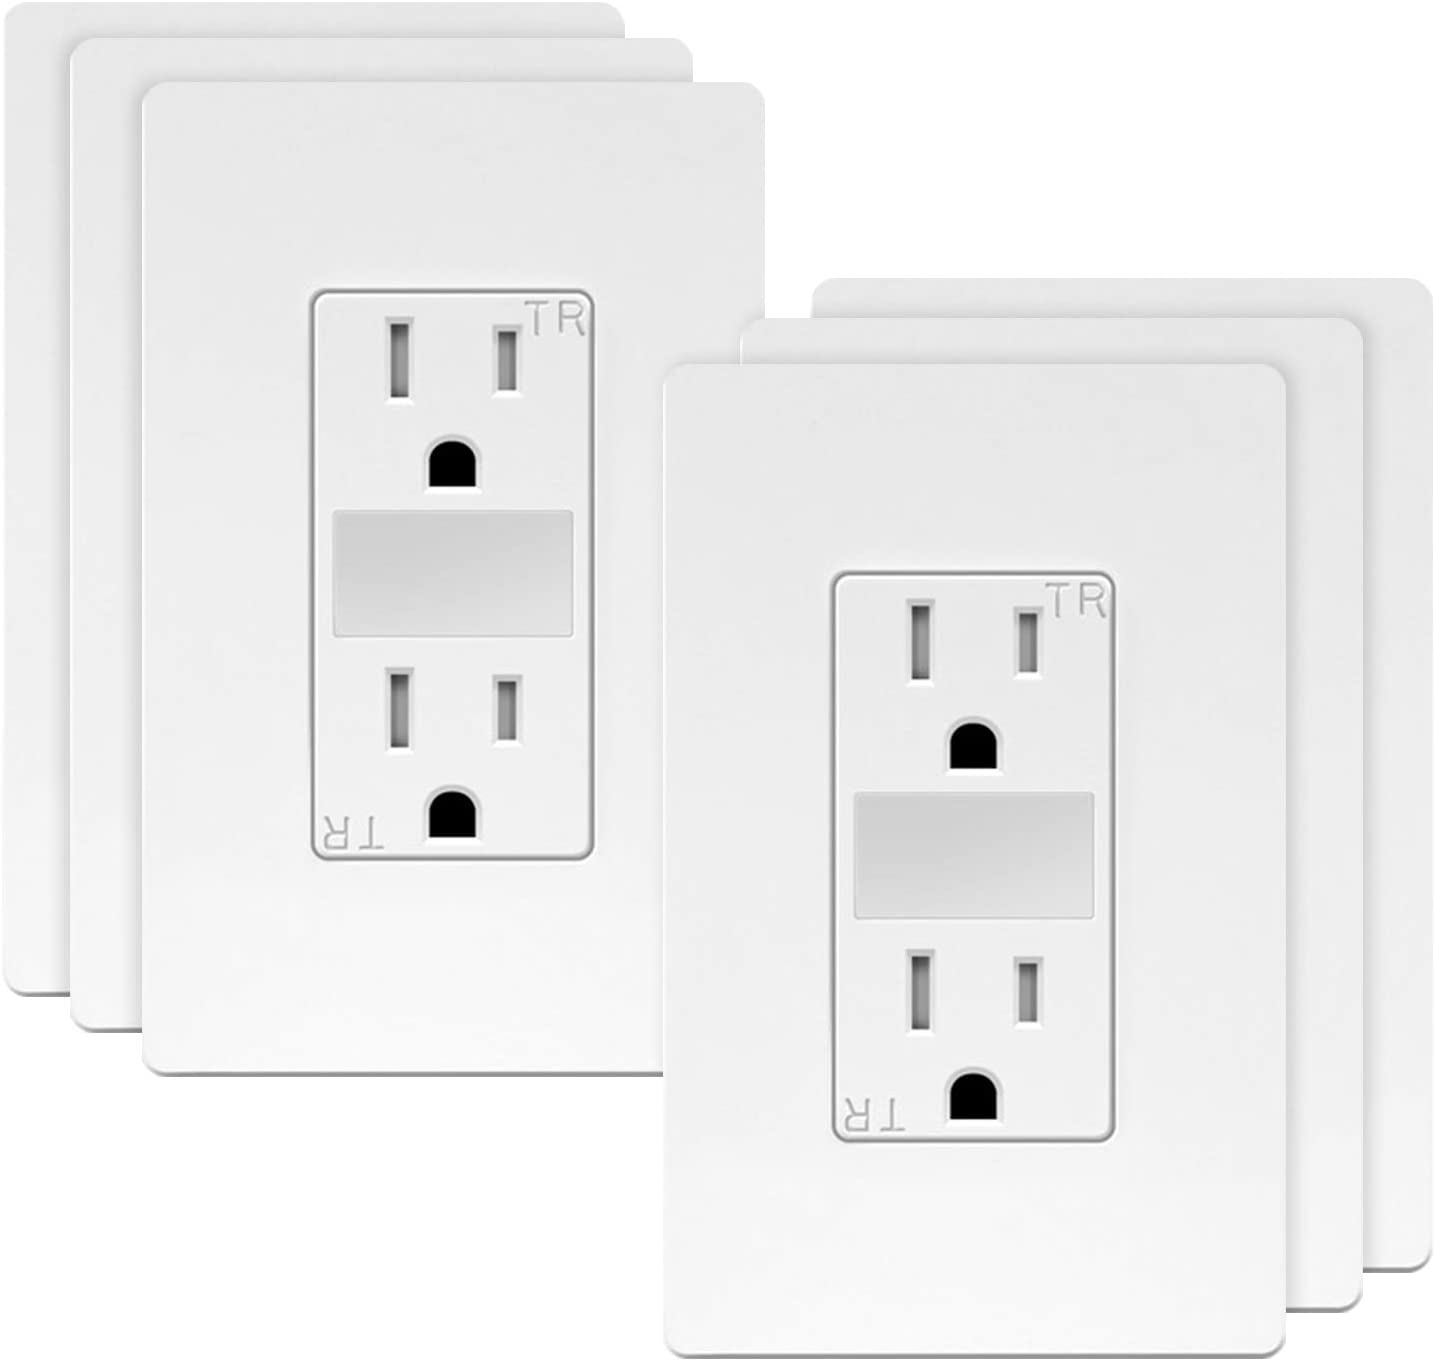 TOPGREENER LED Guide Light Receptacle, Automatic Night/Day Sensor Decorator Duplex Outlet Combination, 125VAC/15A Tamper-Resistant Receptacle, White Screwless Wall Plate Included, TG215TRGL (6 Pack)